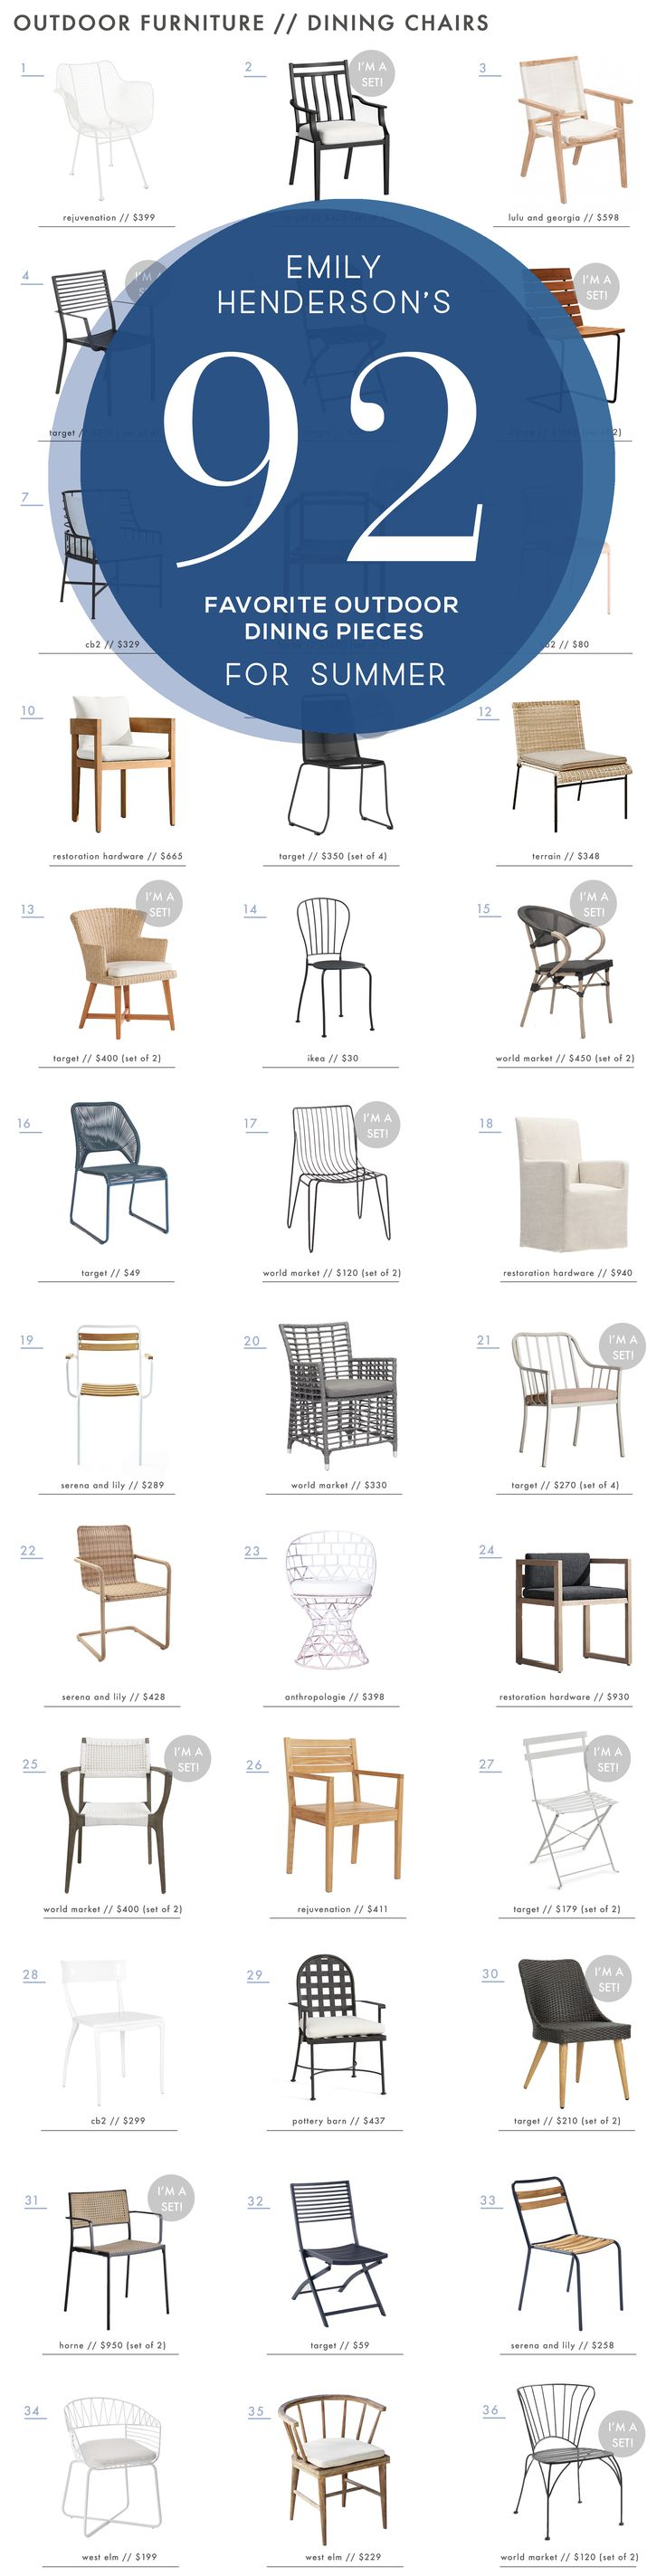 258 best Outdoor Spaces images on Pinterest